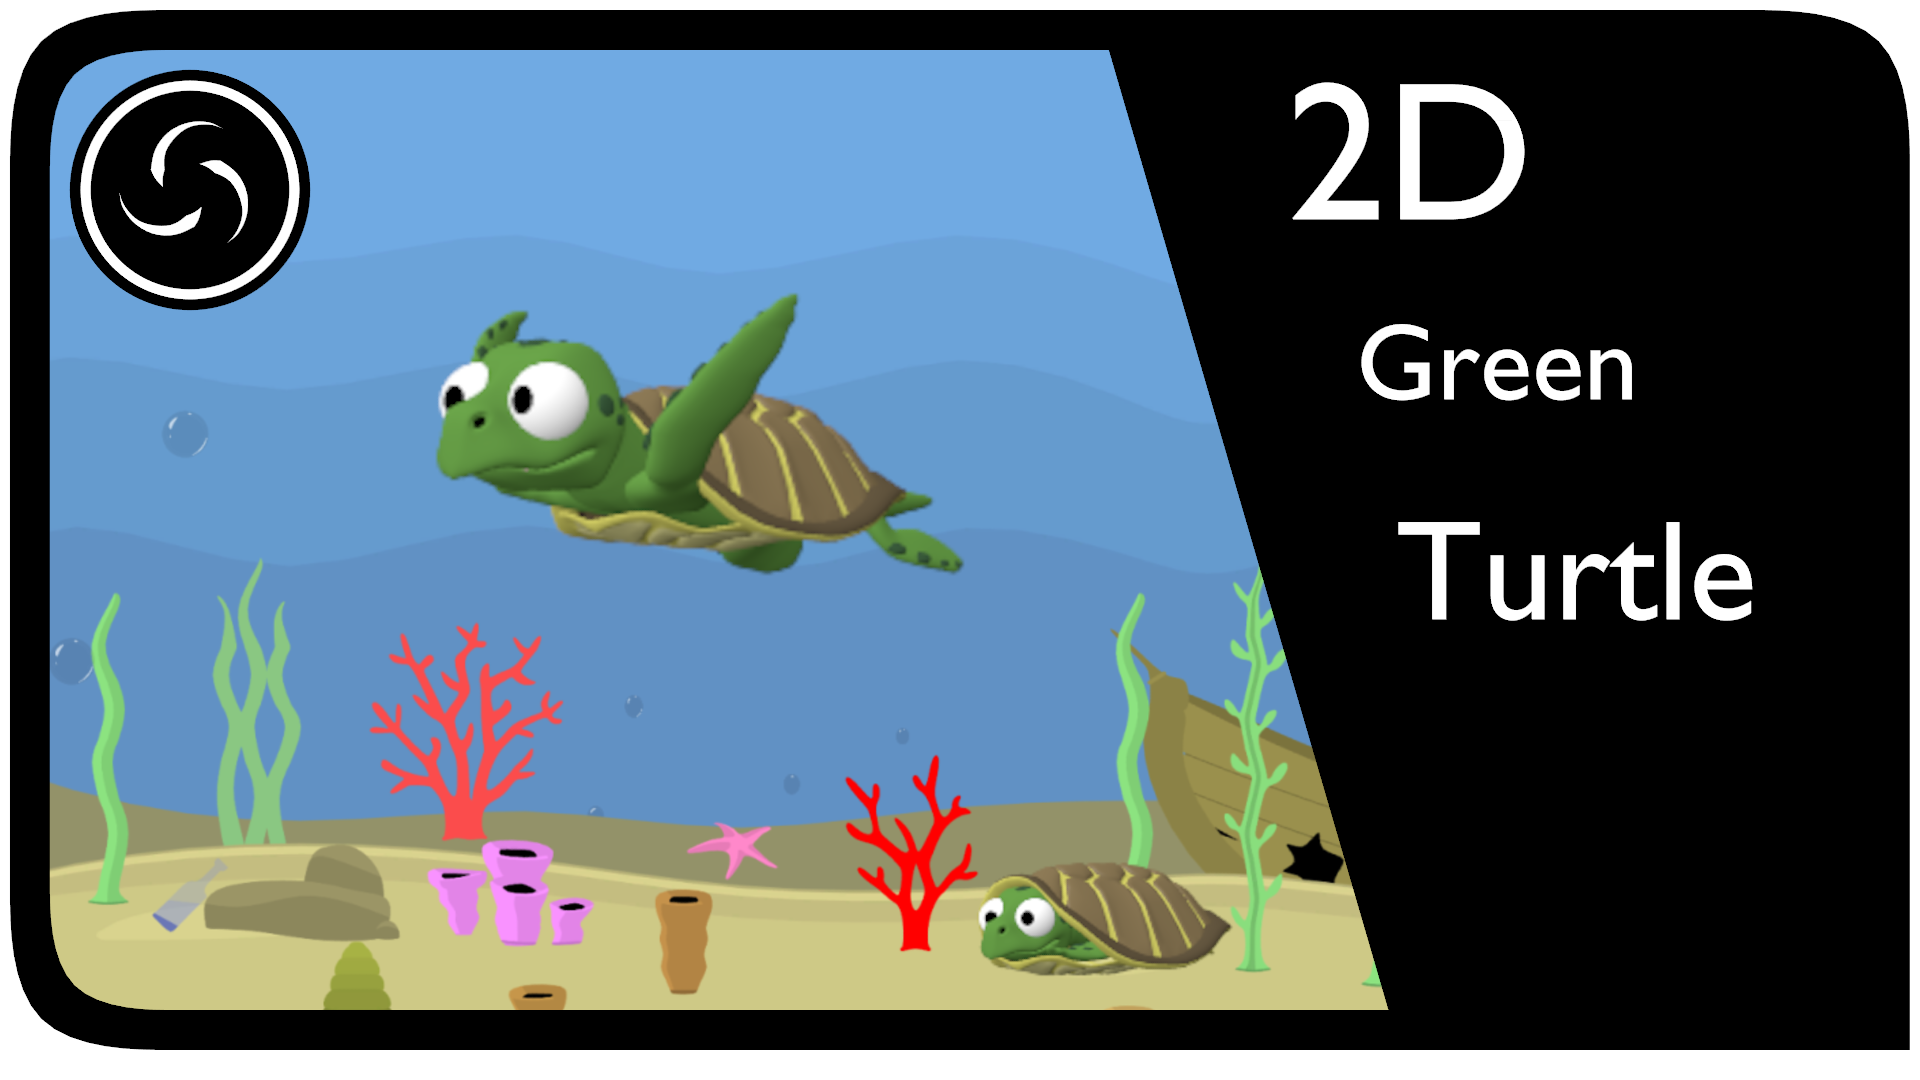 2D Green Turtle